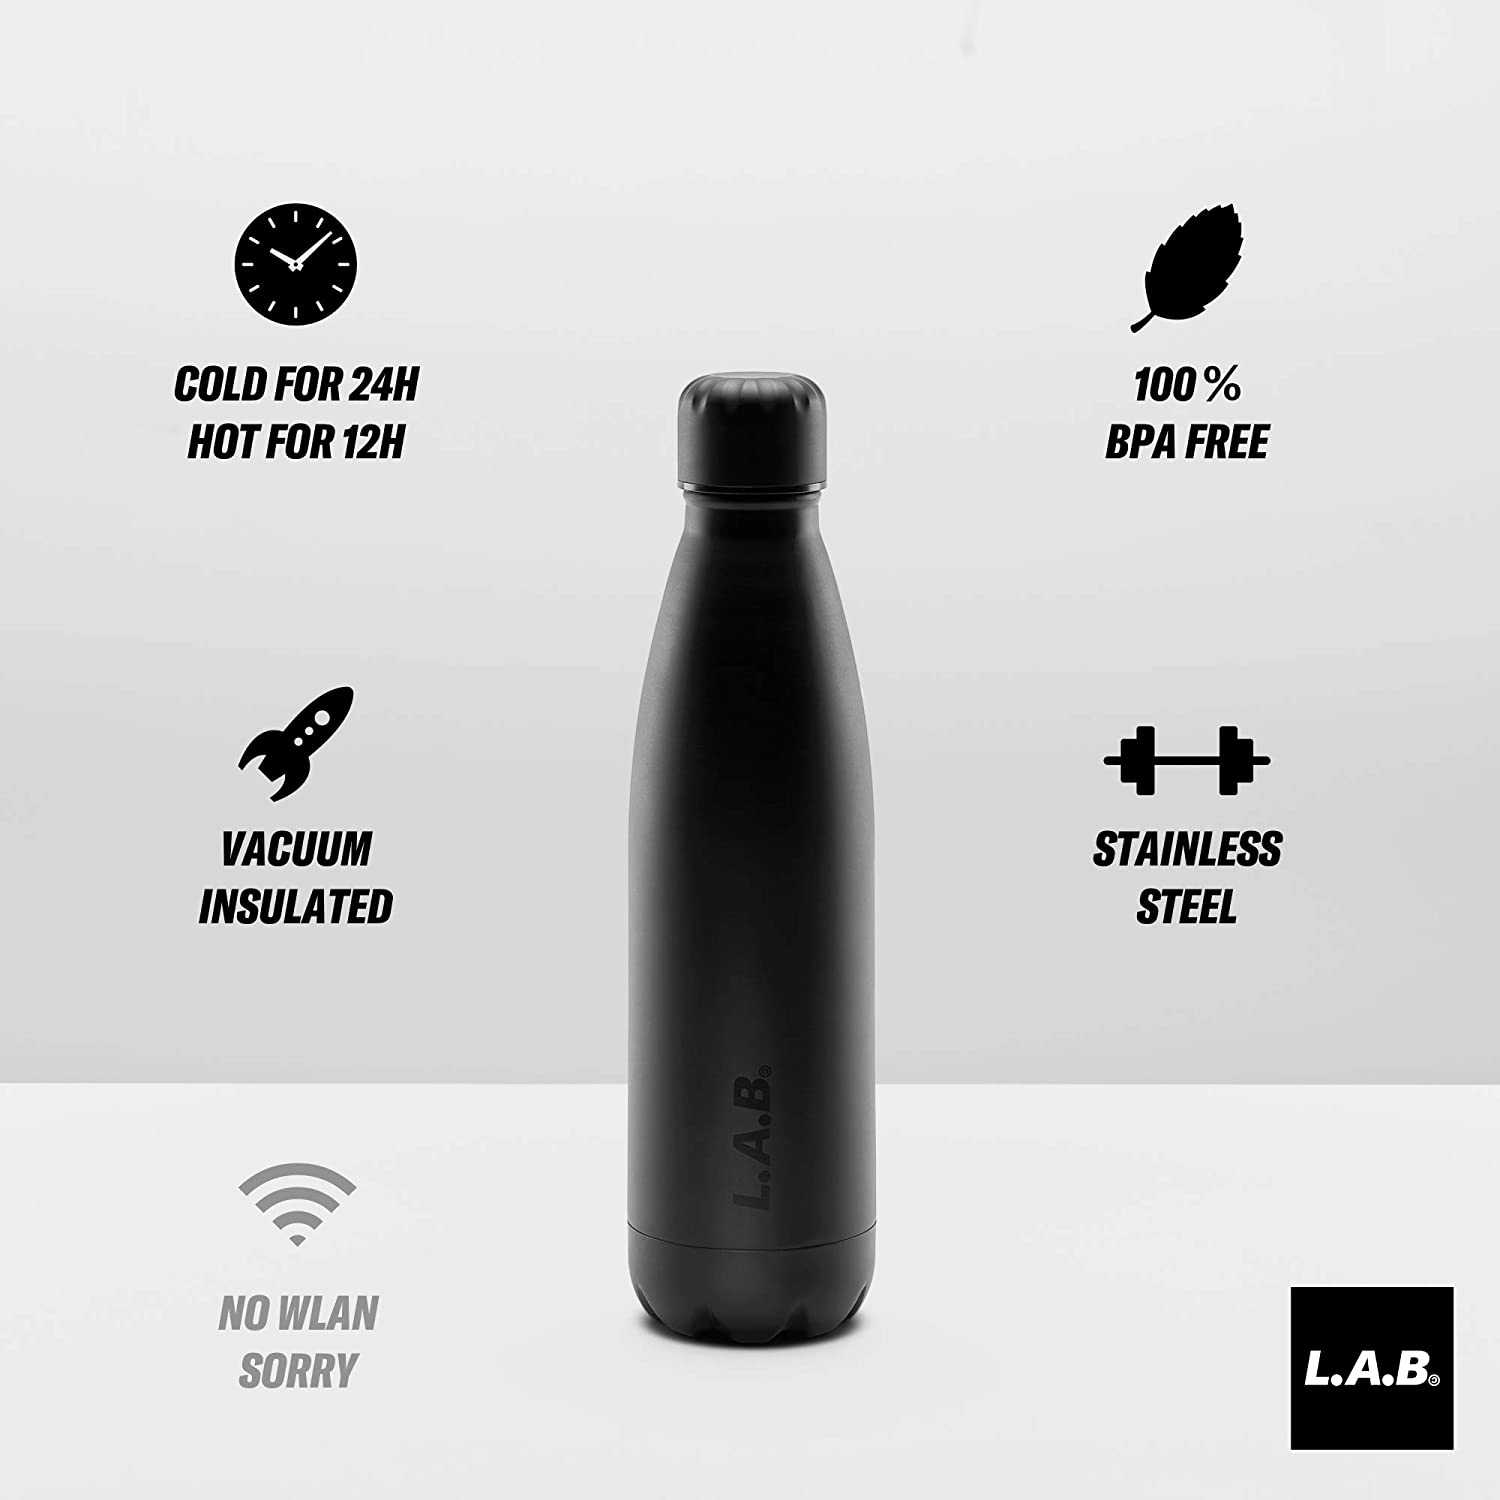 Bottle by Lab/500 ml botella de agua térmico doble de alta calidad acero inoxidable termo/Premium/TOP Botella para oficina (Diseño Agencia), fitness (Yoga) ...